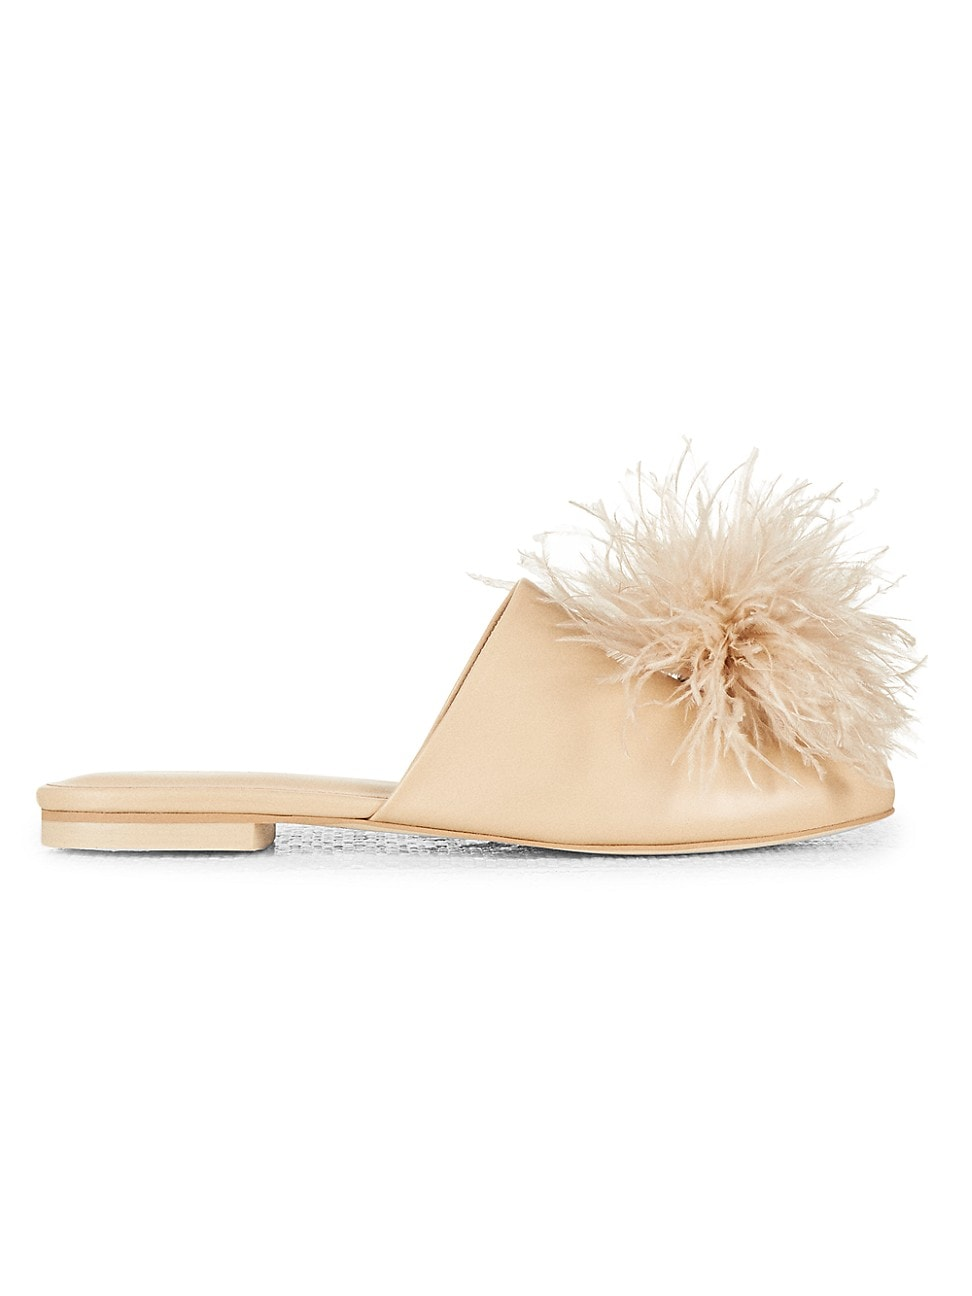 Cult Gaia WOMEN'S RAY FEATHER-TRIMMED LEATHER MULES